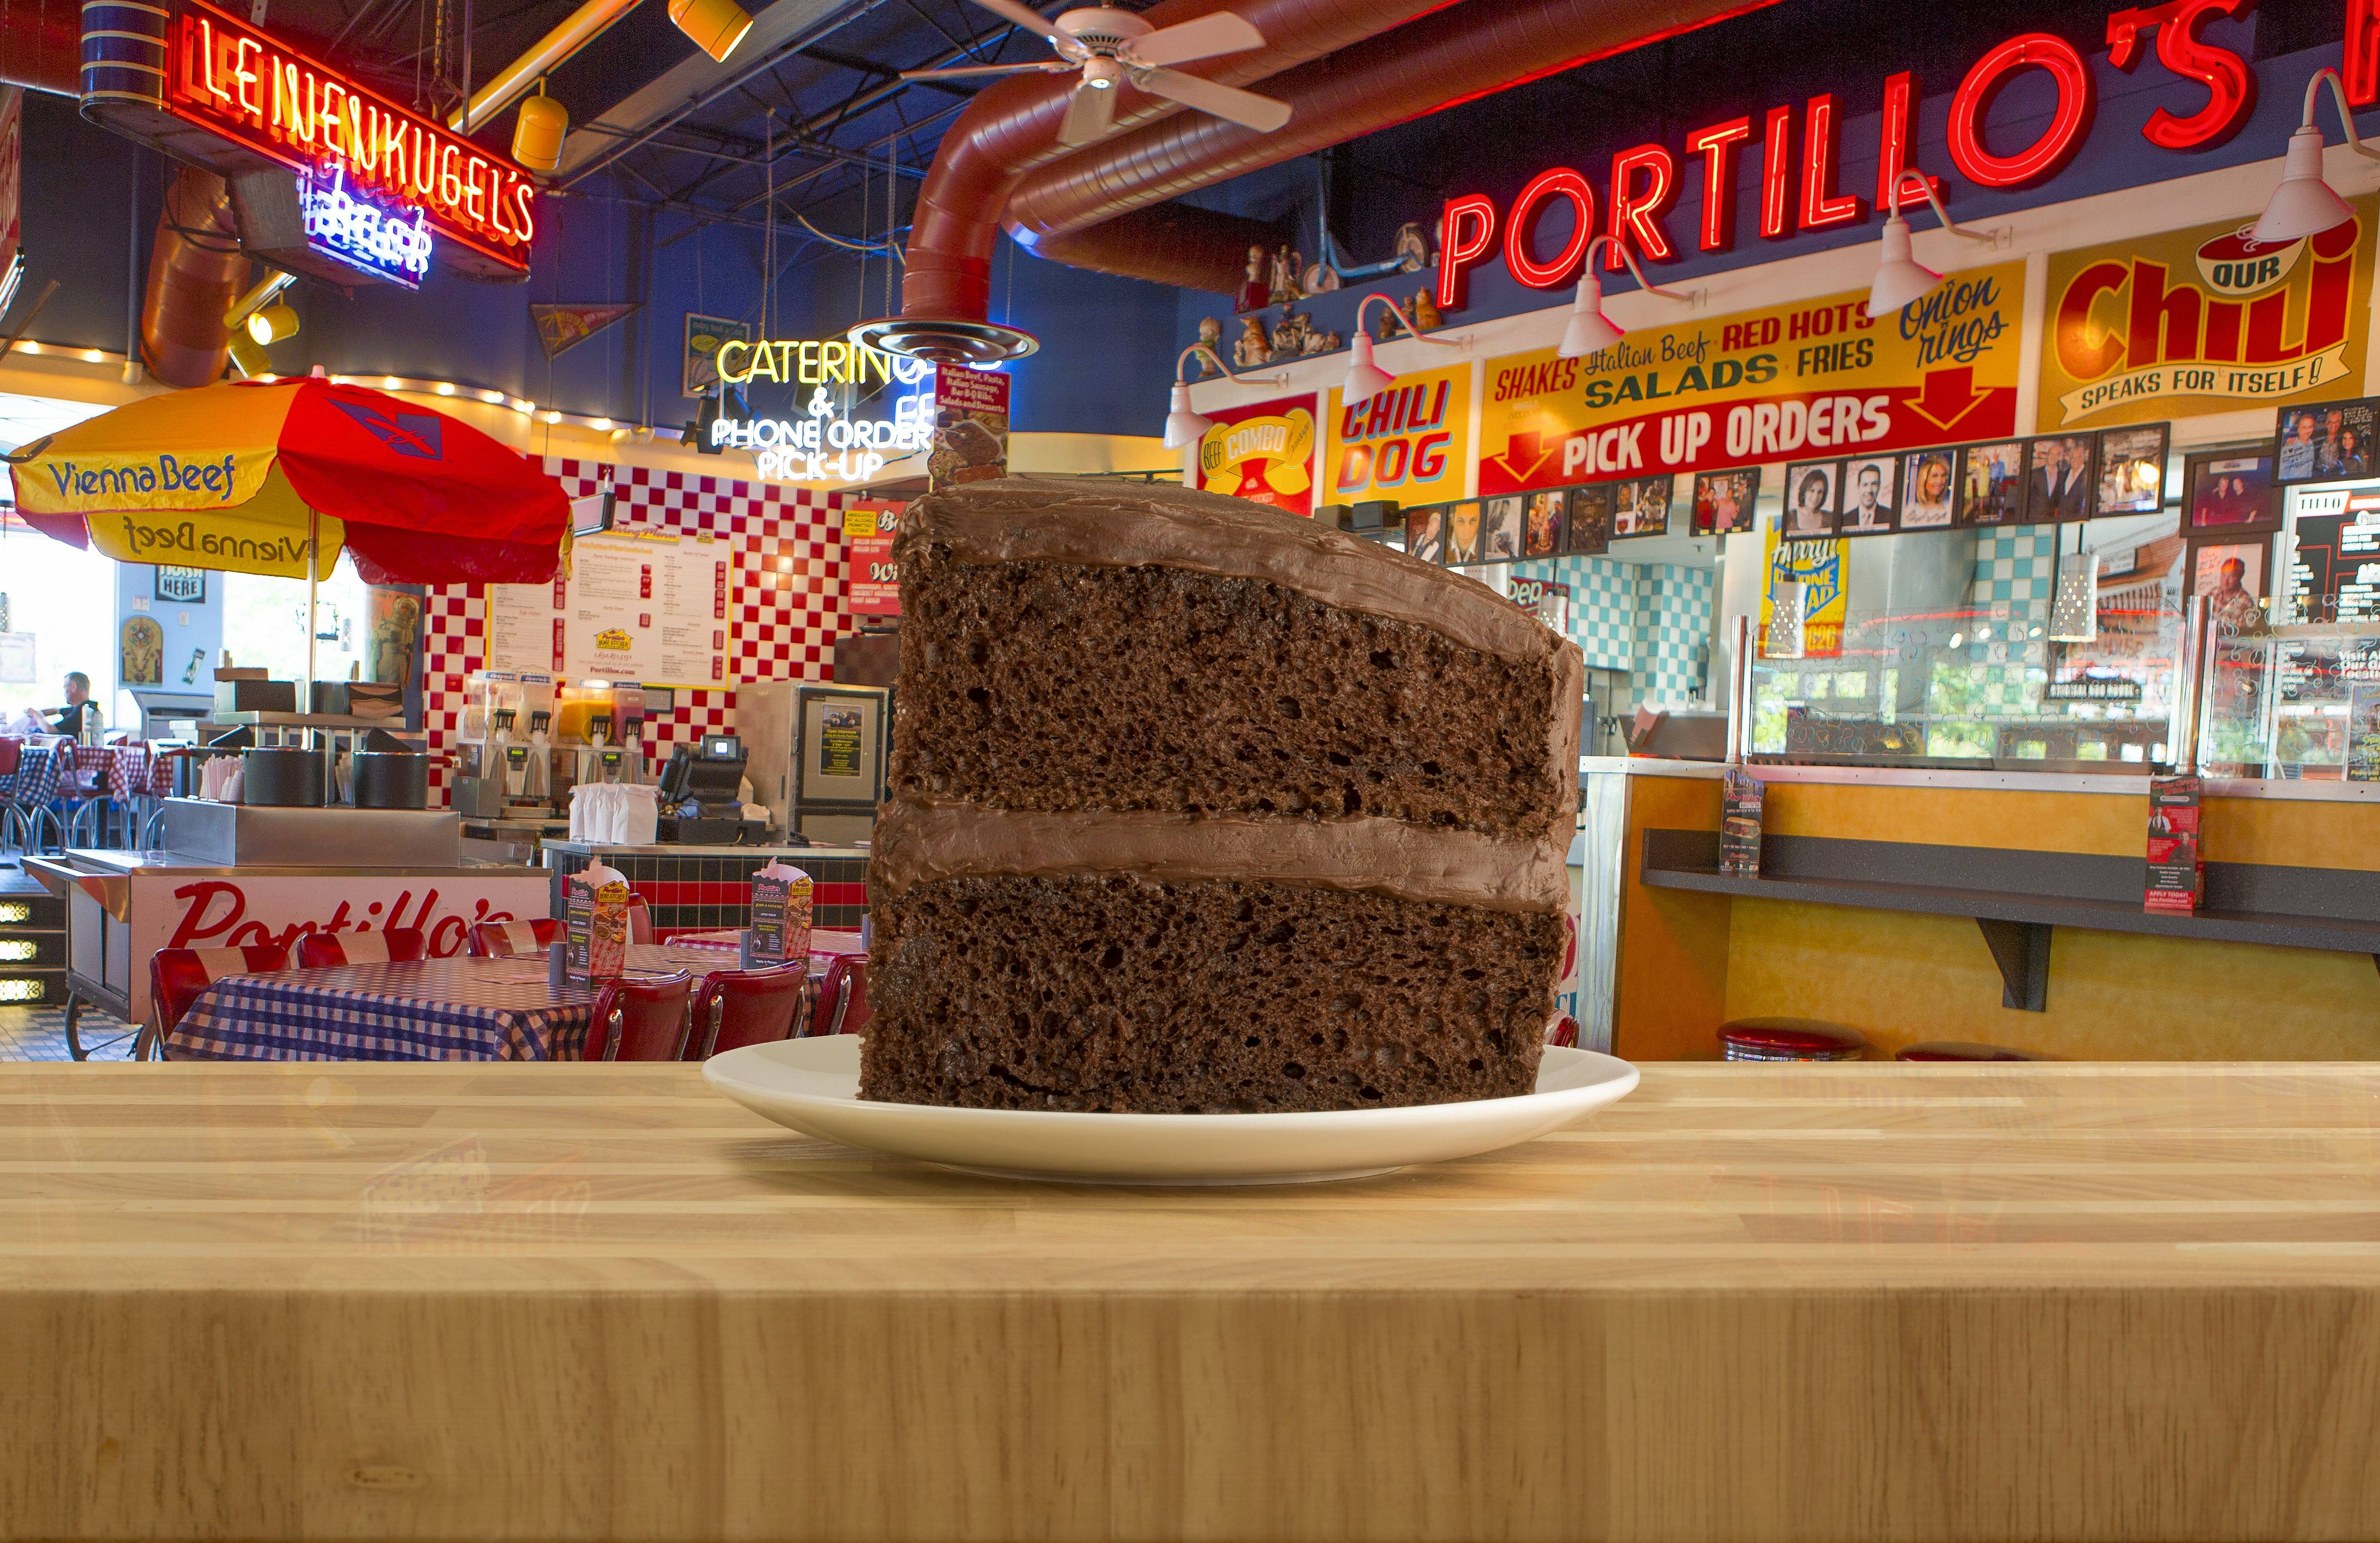 Portillo's 'subscription' delivers food to any home in U.S.